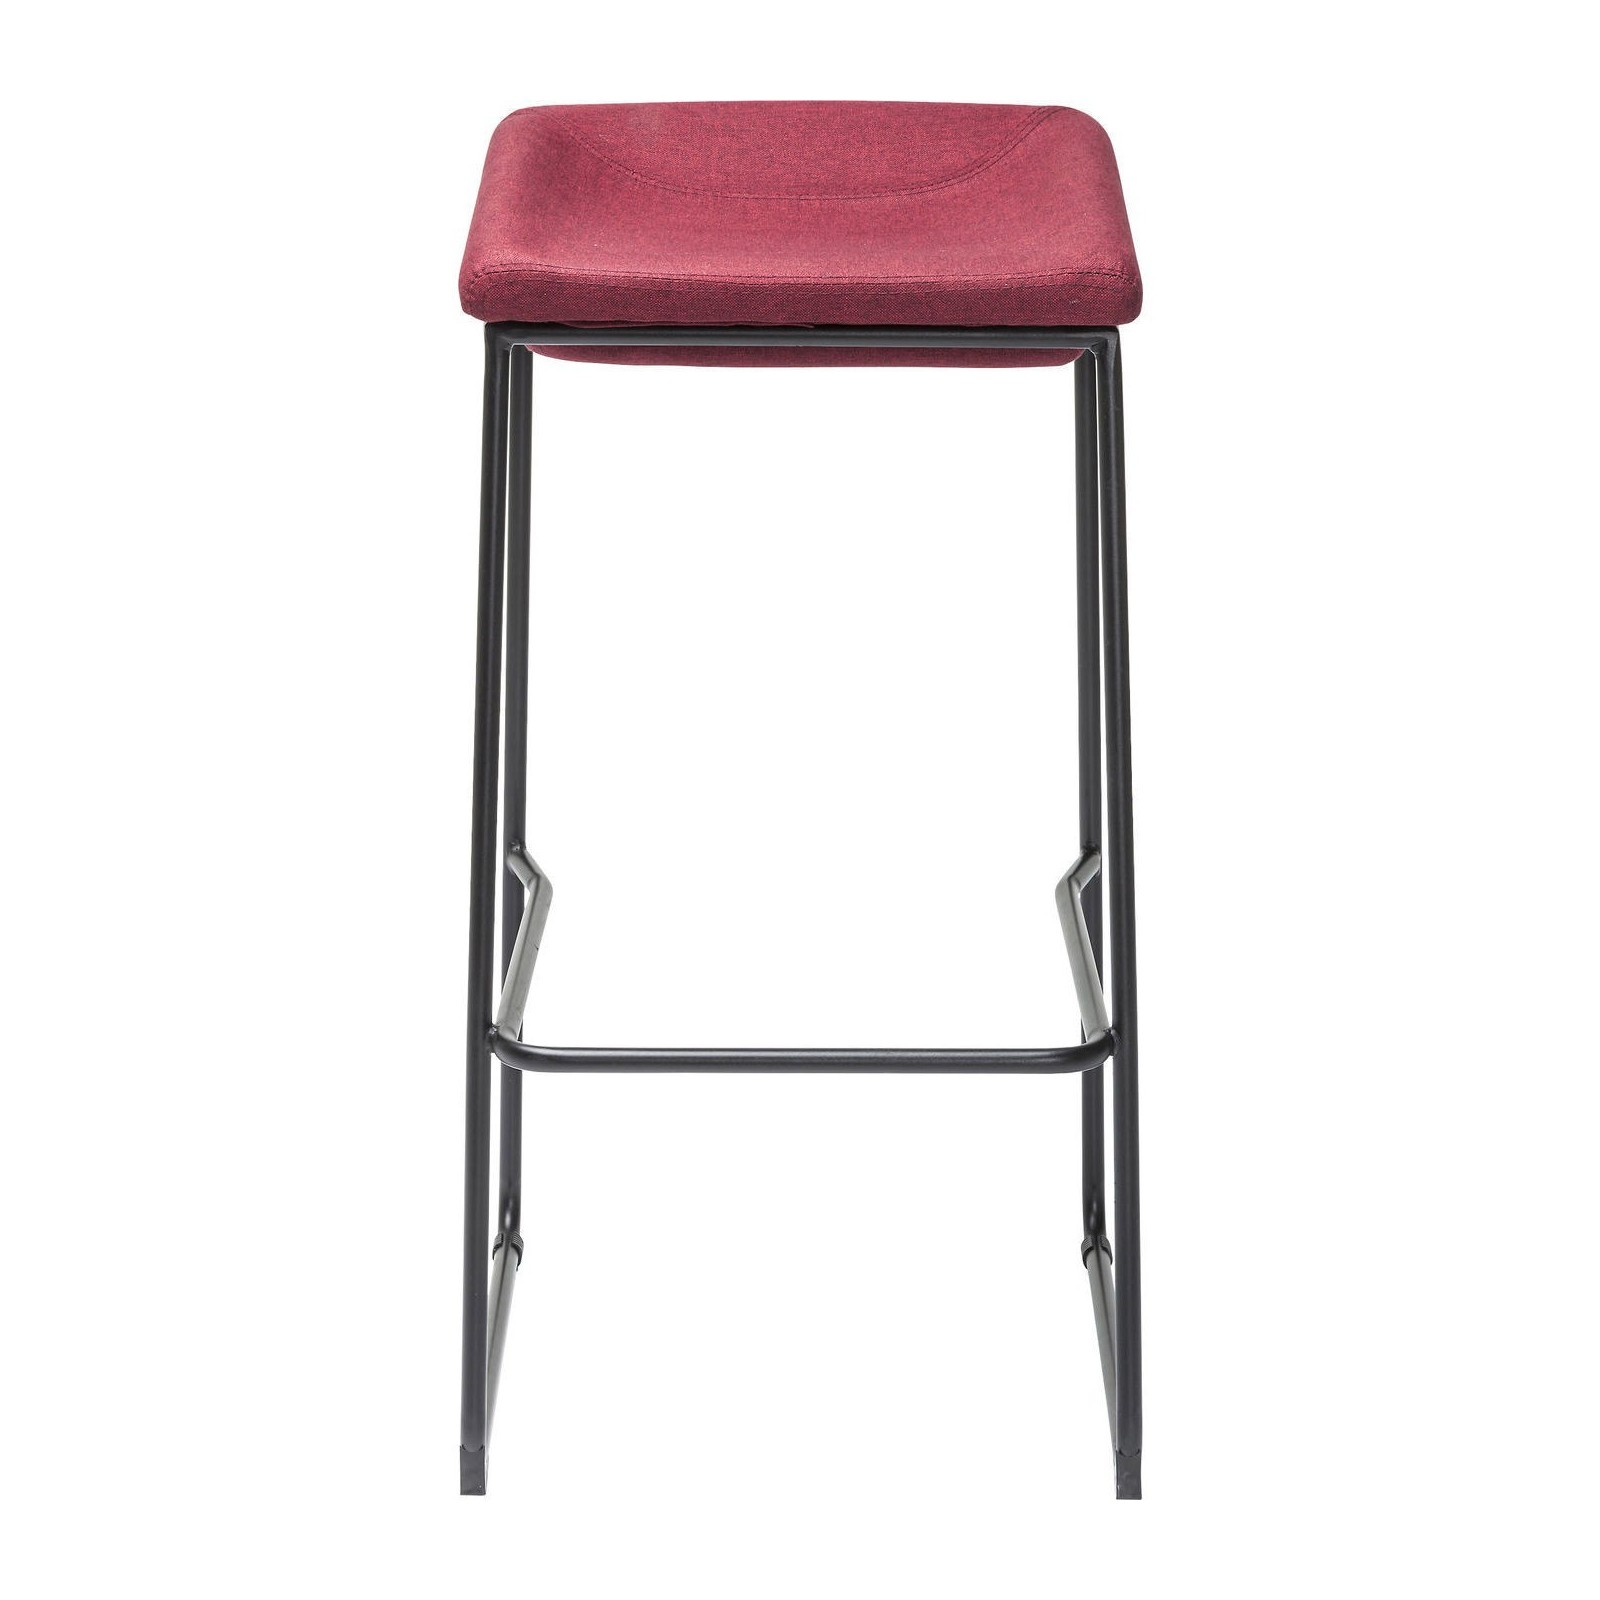 tabouret de bar design rouge shape meubles d co kare design. Black Bedroom Furniture Sets. Home Design Ideas